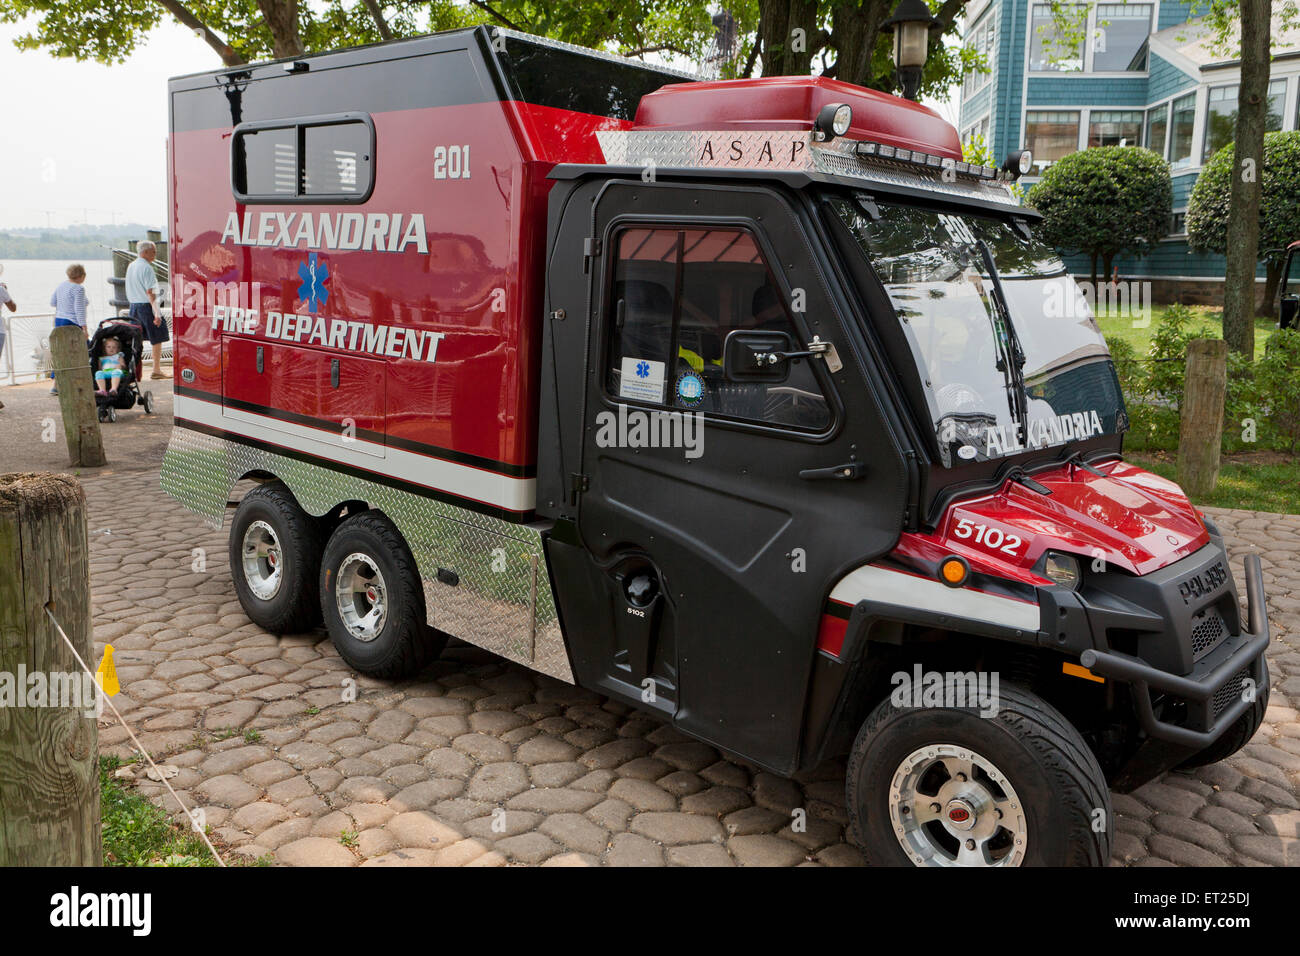 Fire Department ATV (All-Terrain Vehicle) truck - Alexandria, Virginia USA - Stock Image